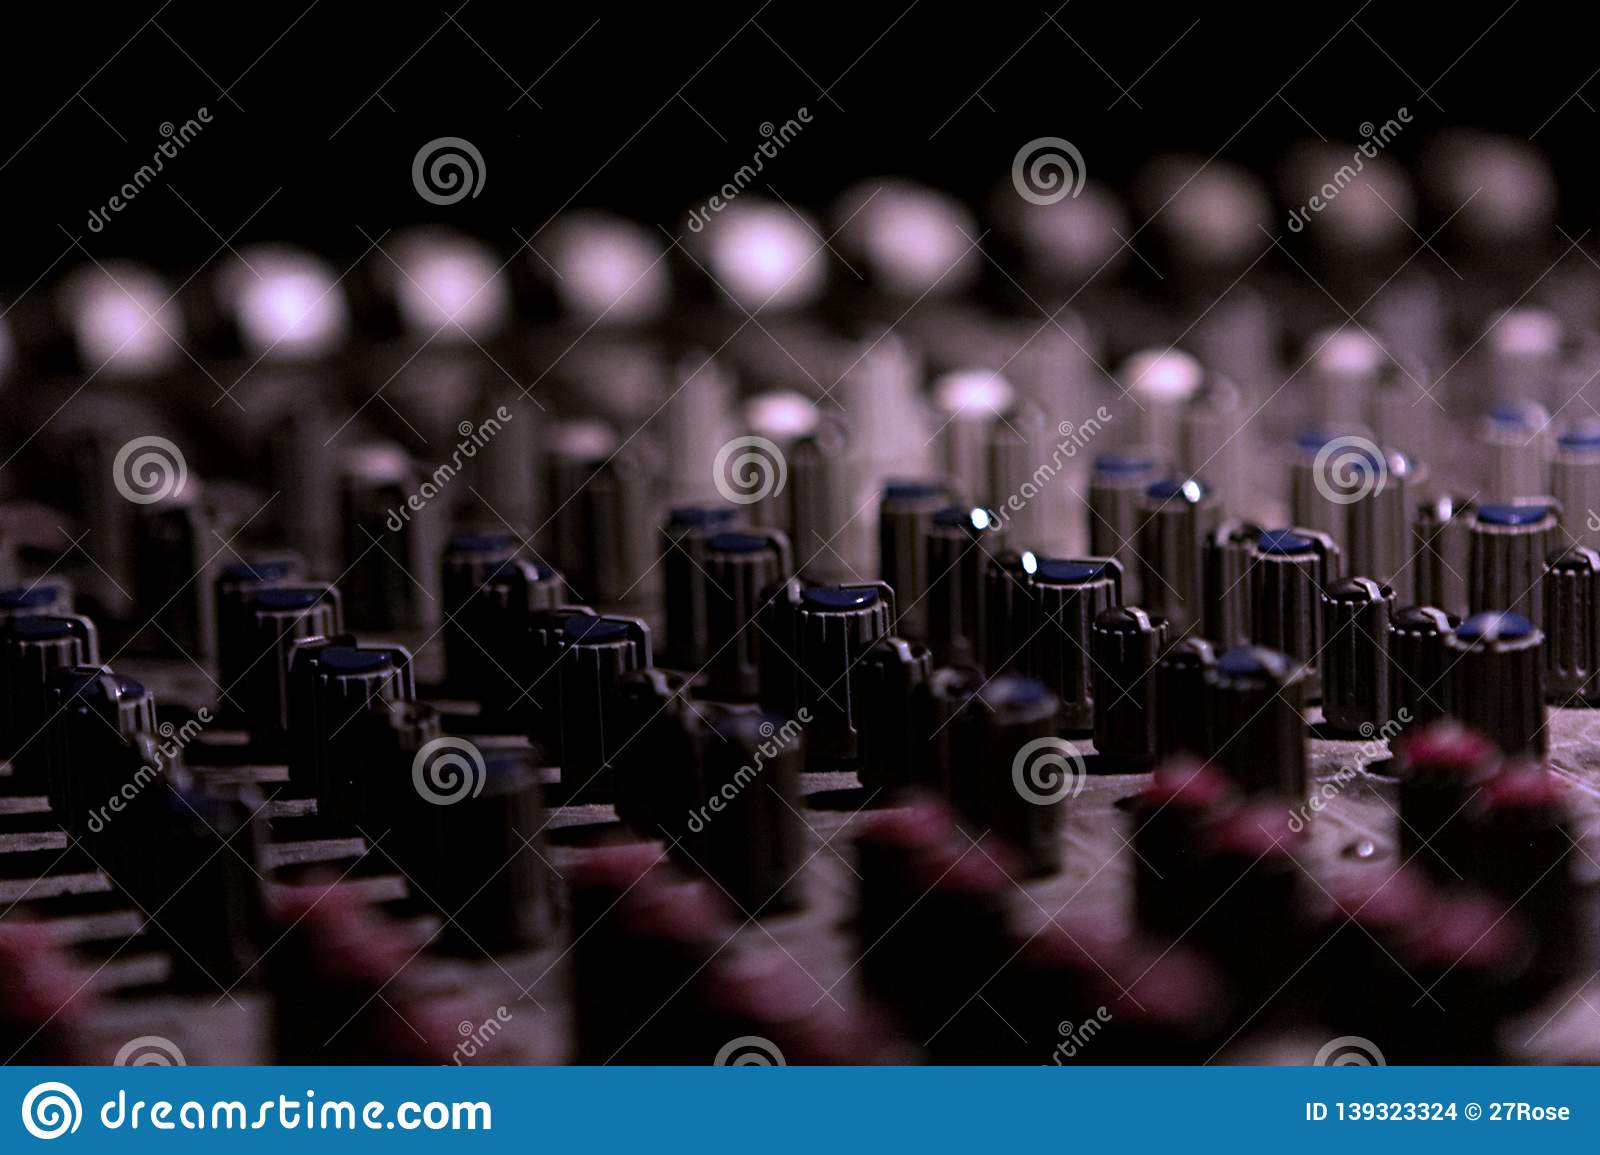 Knobs on a control panel